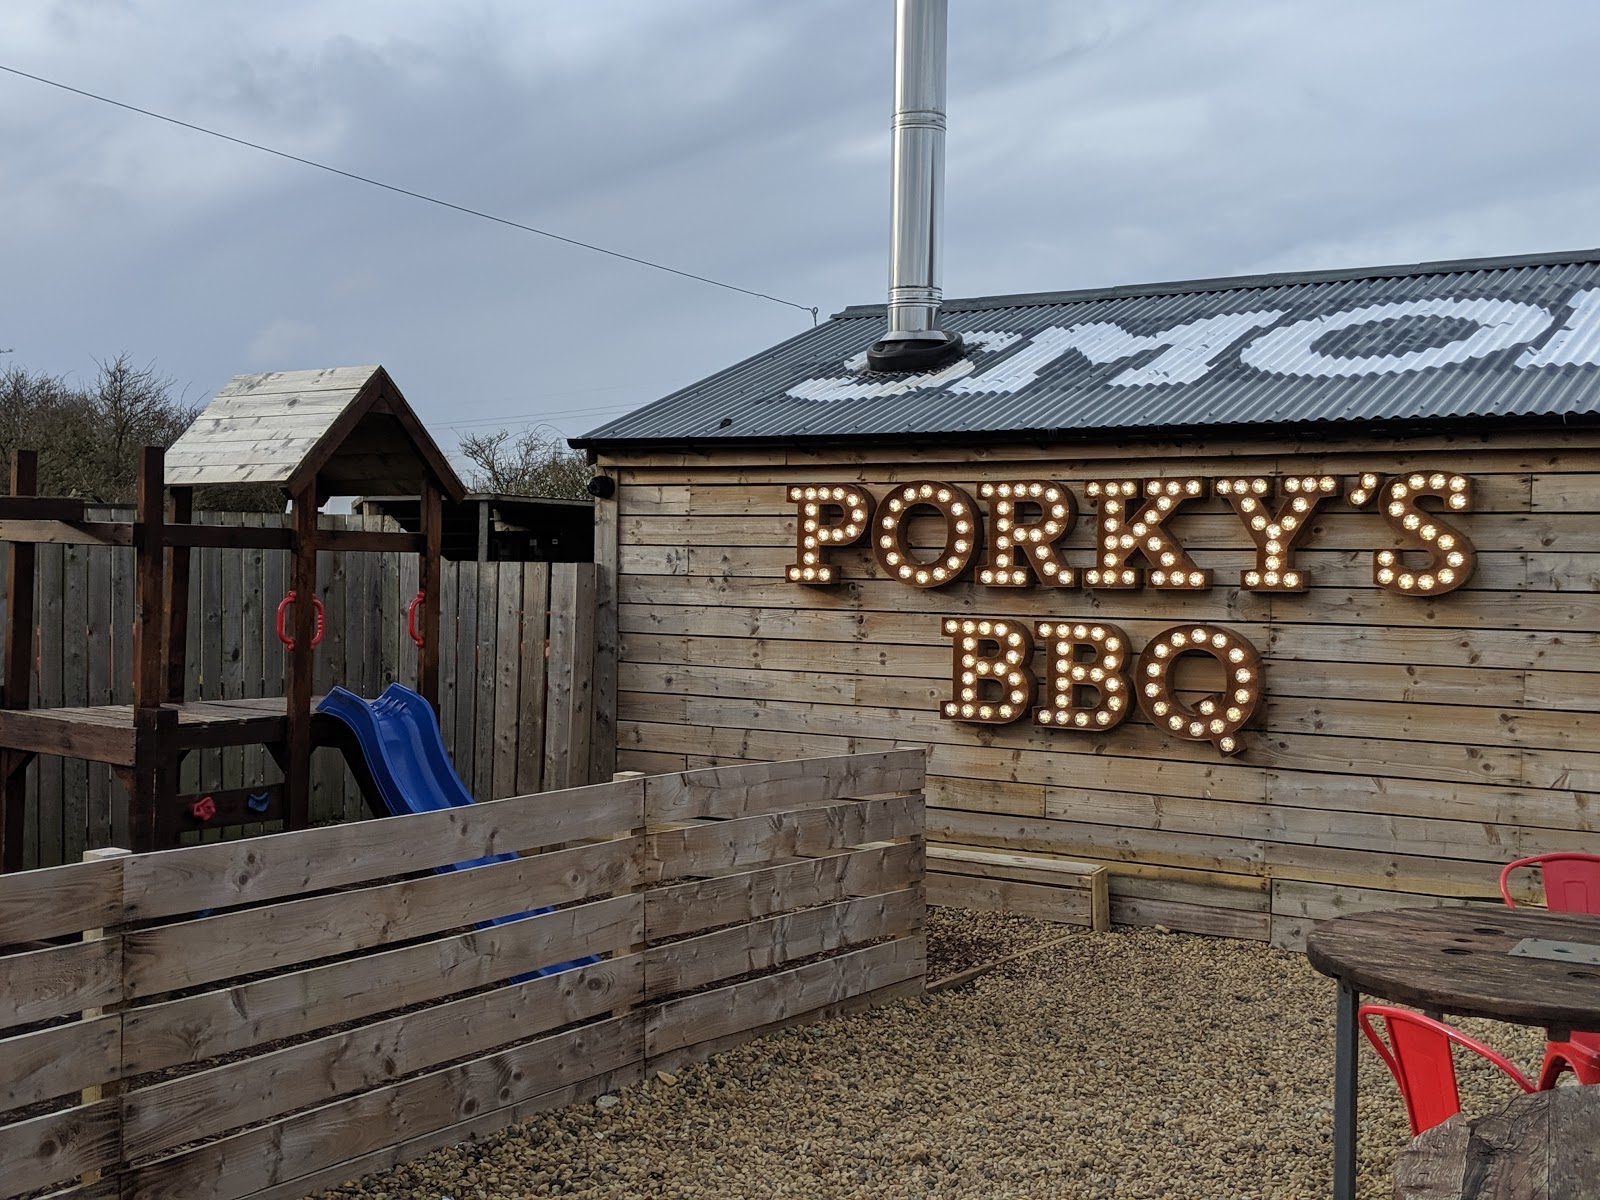 Kids Eat Free at Porky's - A Review  - play area